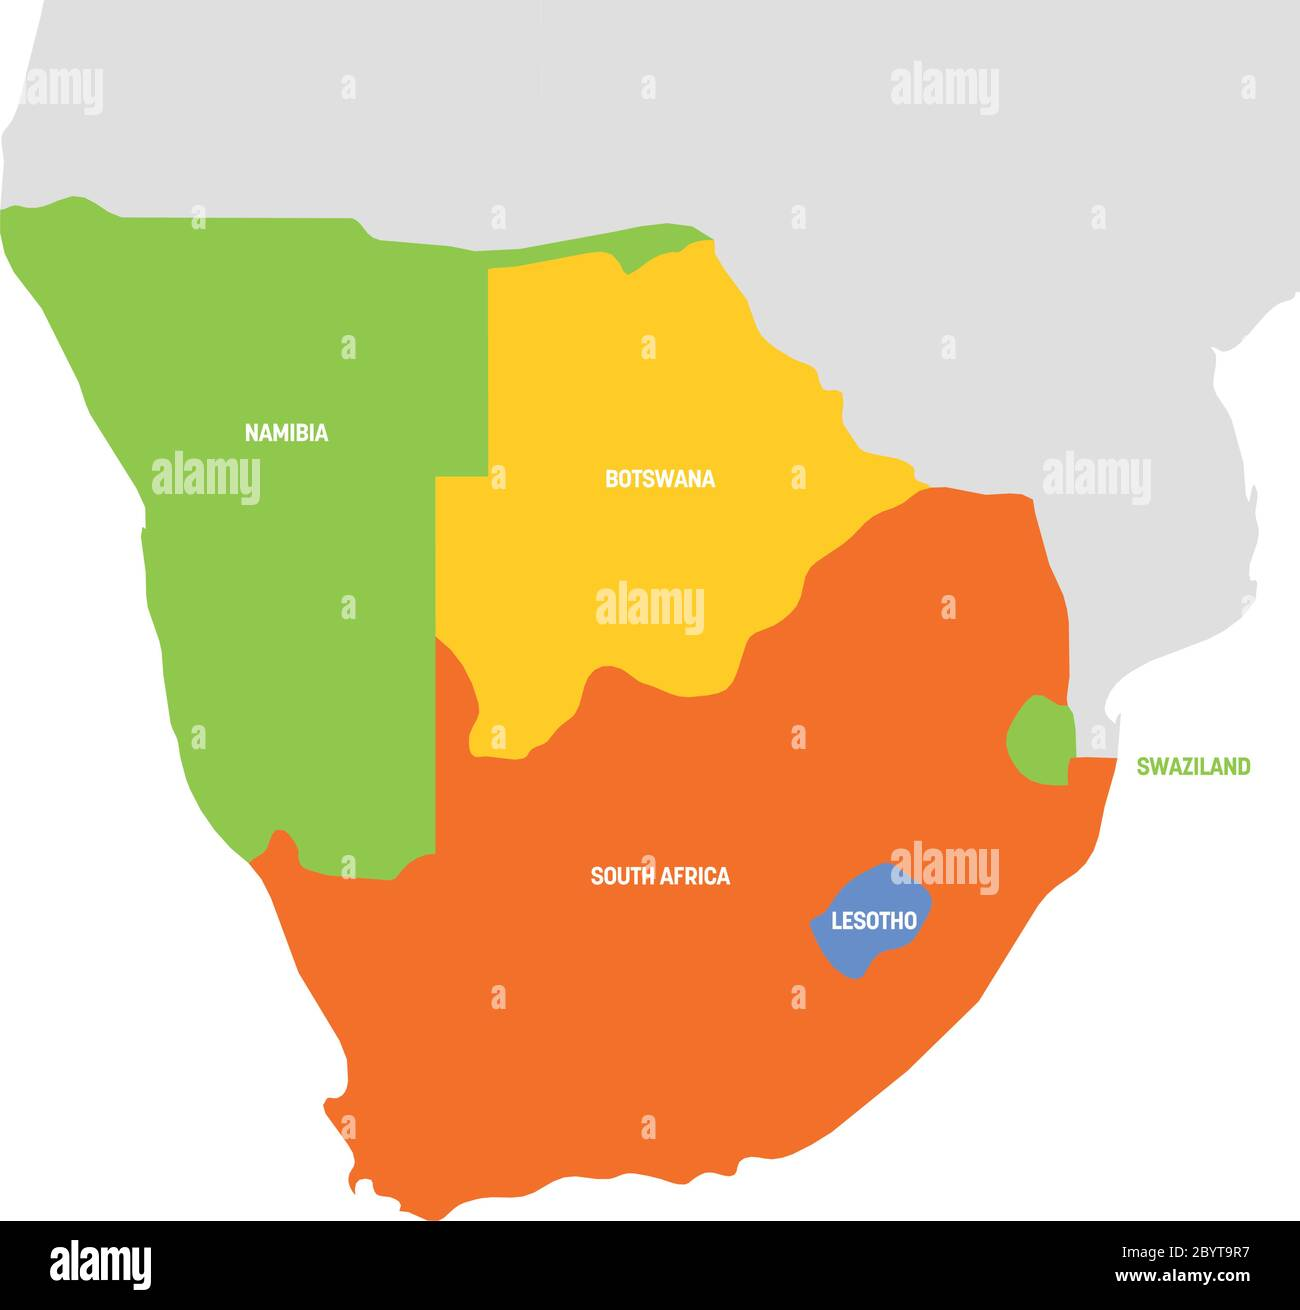 South Africa Region Map South Africa Region. Map of countries in southern Africa. Vector